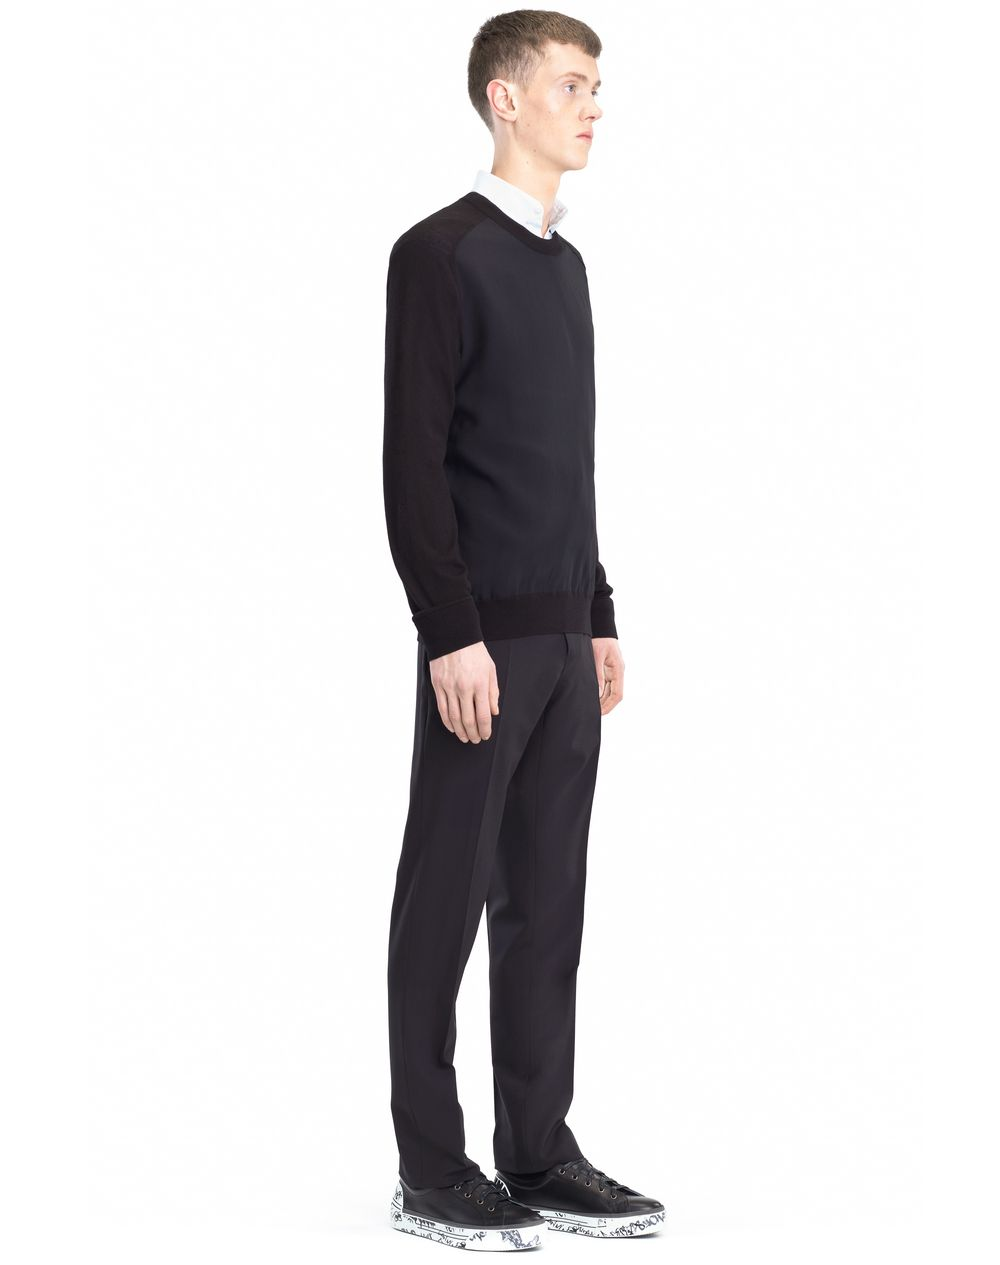 SWEATER WITH JERSEY FRONT - Lanvin